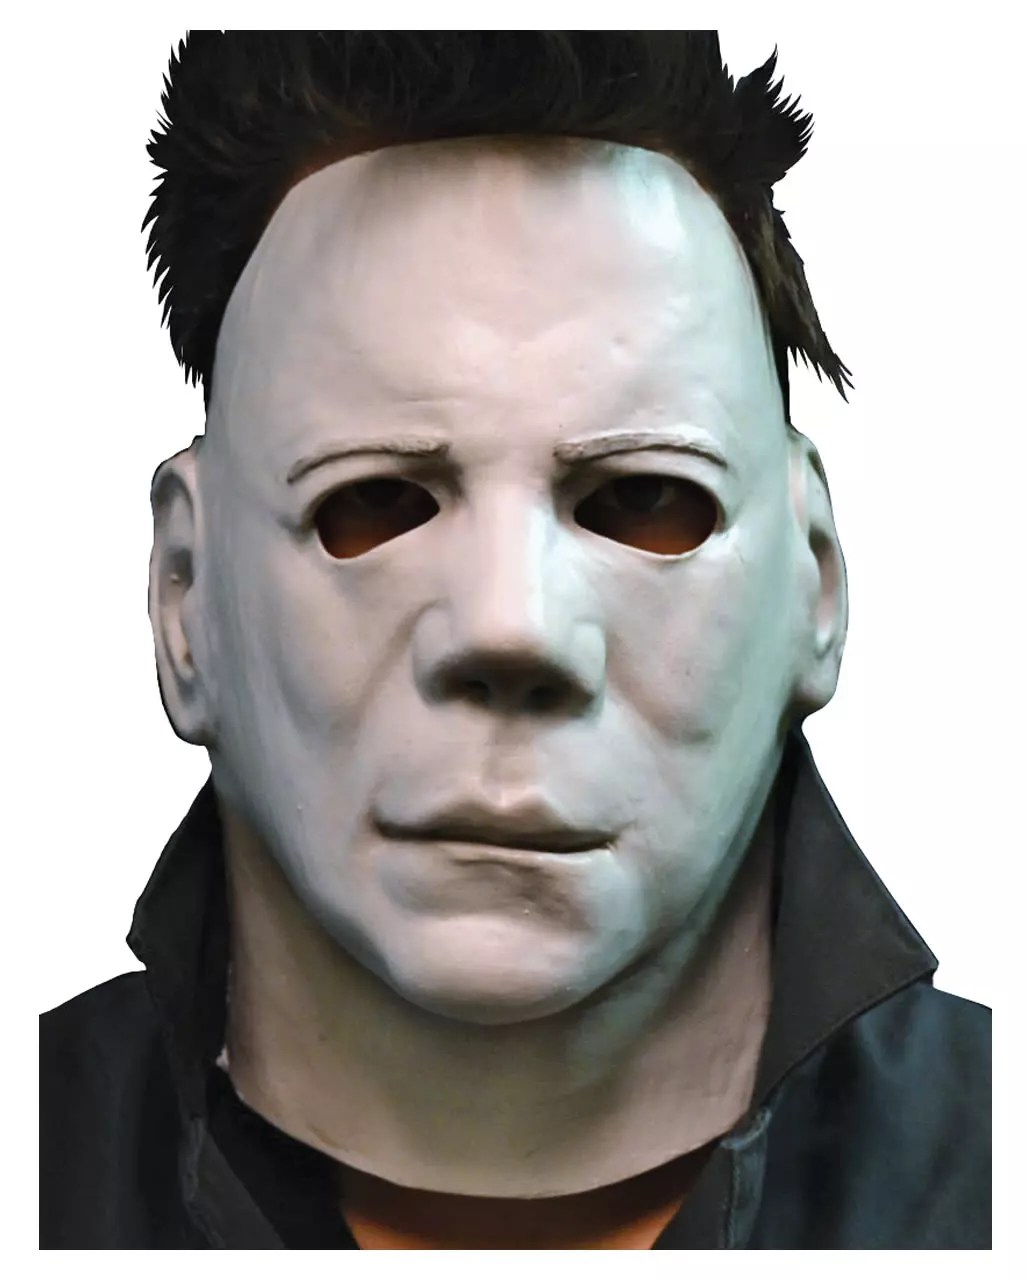 michael myers halloween 2 mask | cartooncreative.co